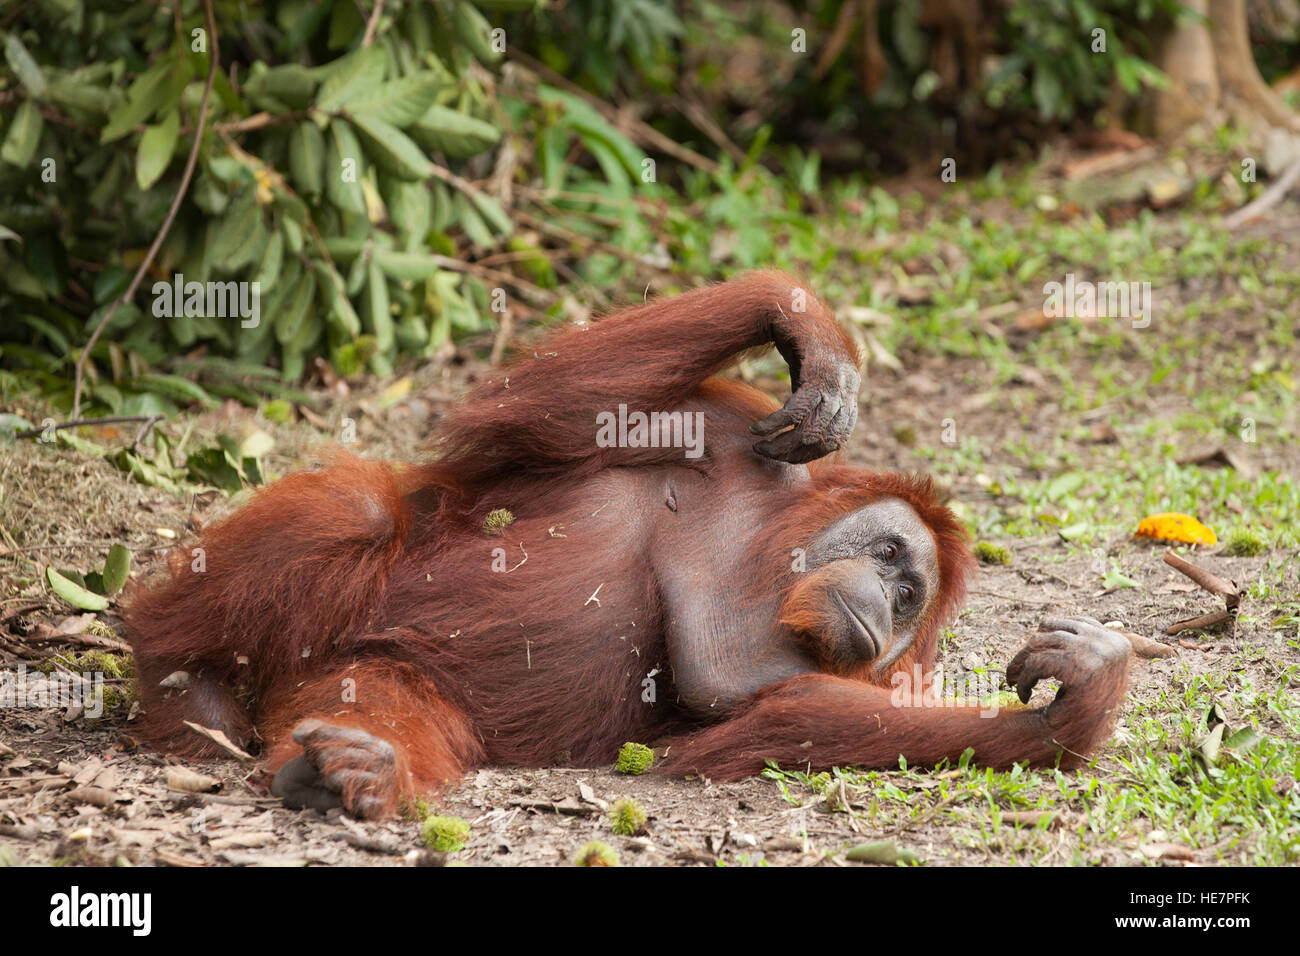 Wild Bornean Orangutan (Pongo pygmaeus) lying on the ground at Camp Leakey - Stock Image